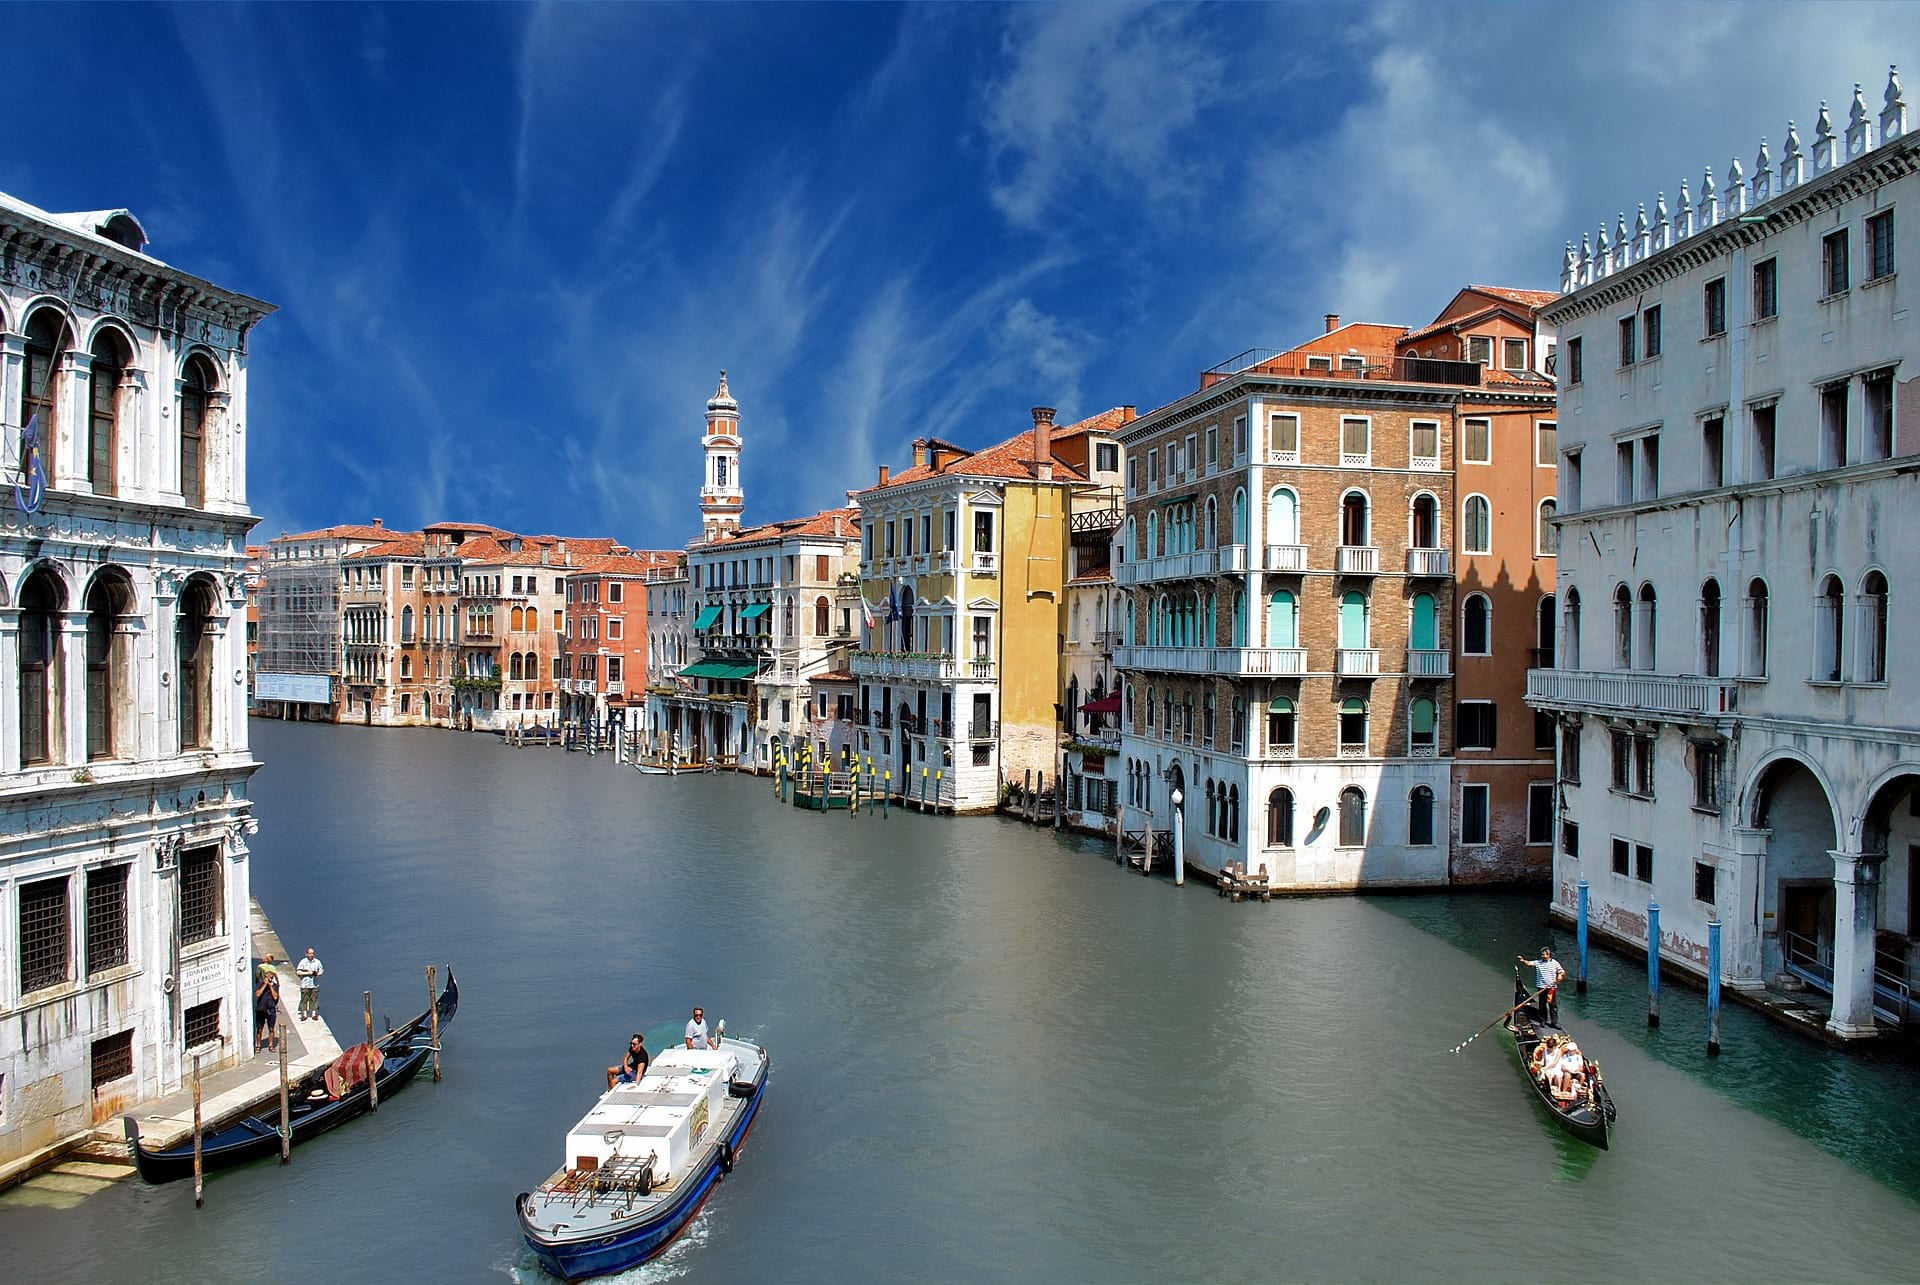 venice grand canal image